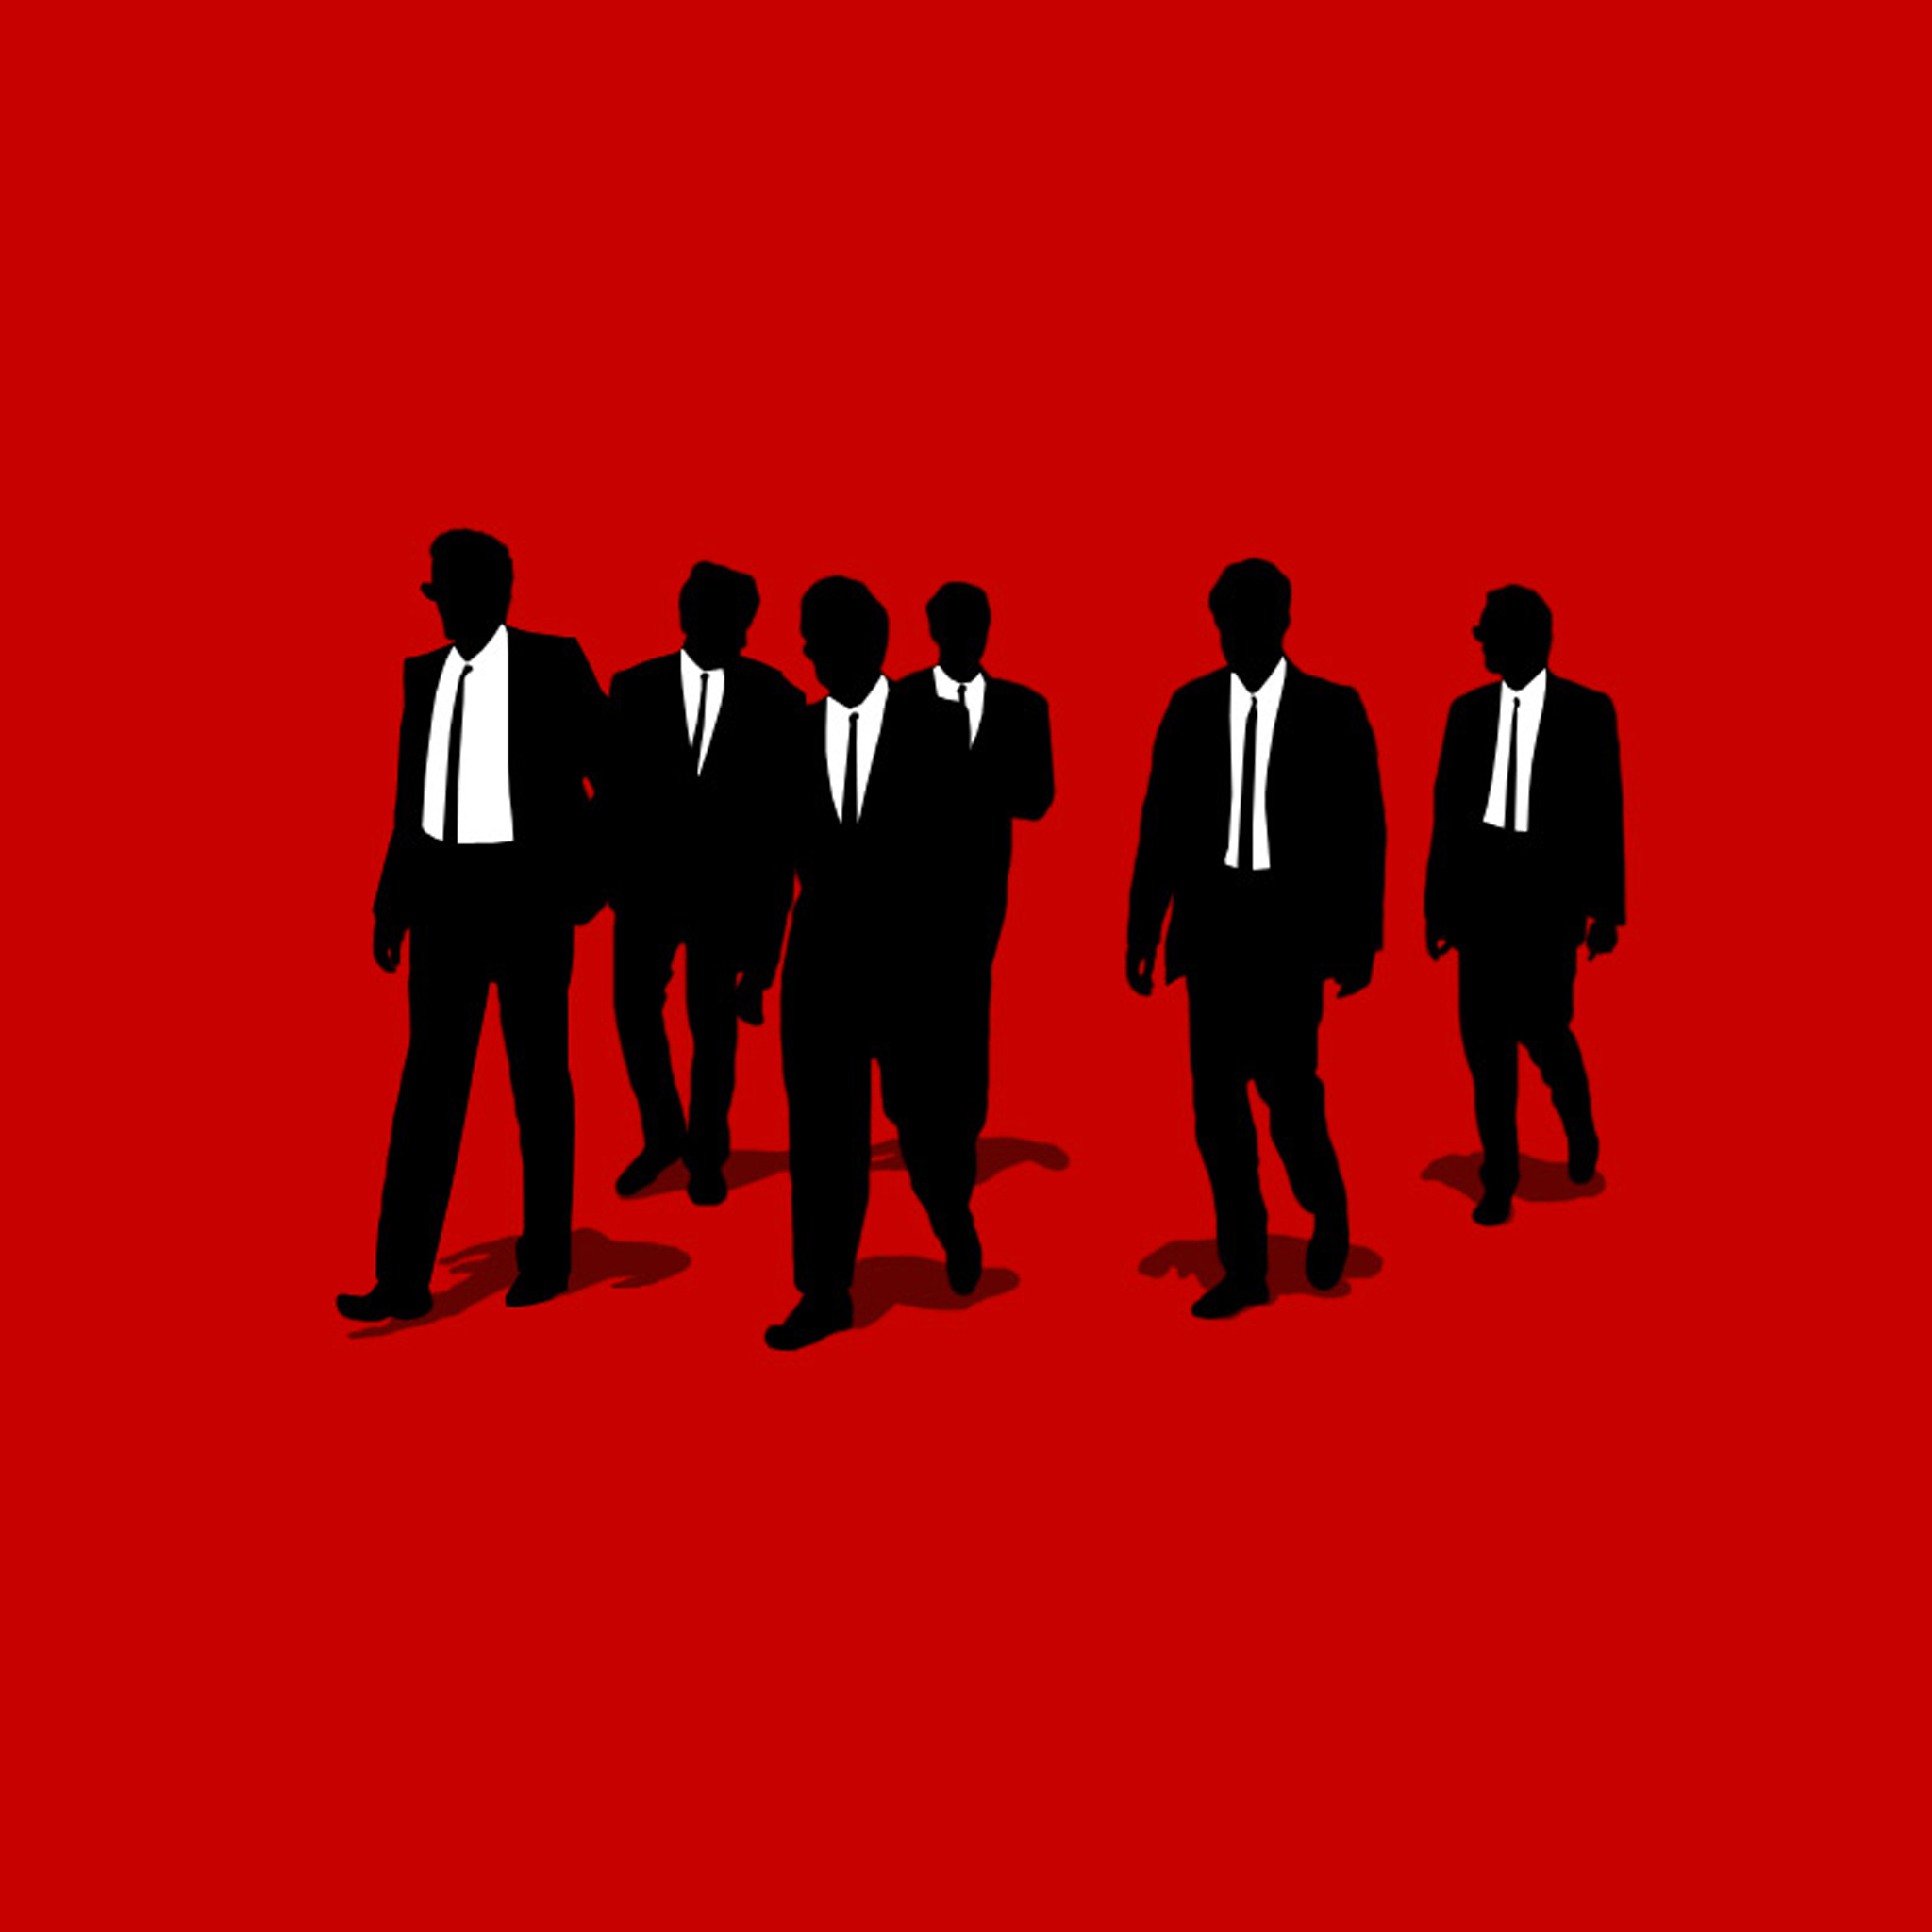 ReservoirDogs3WallpapersiPadRetina